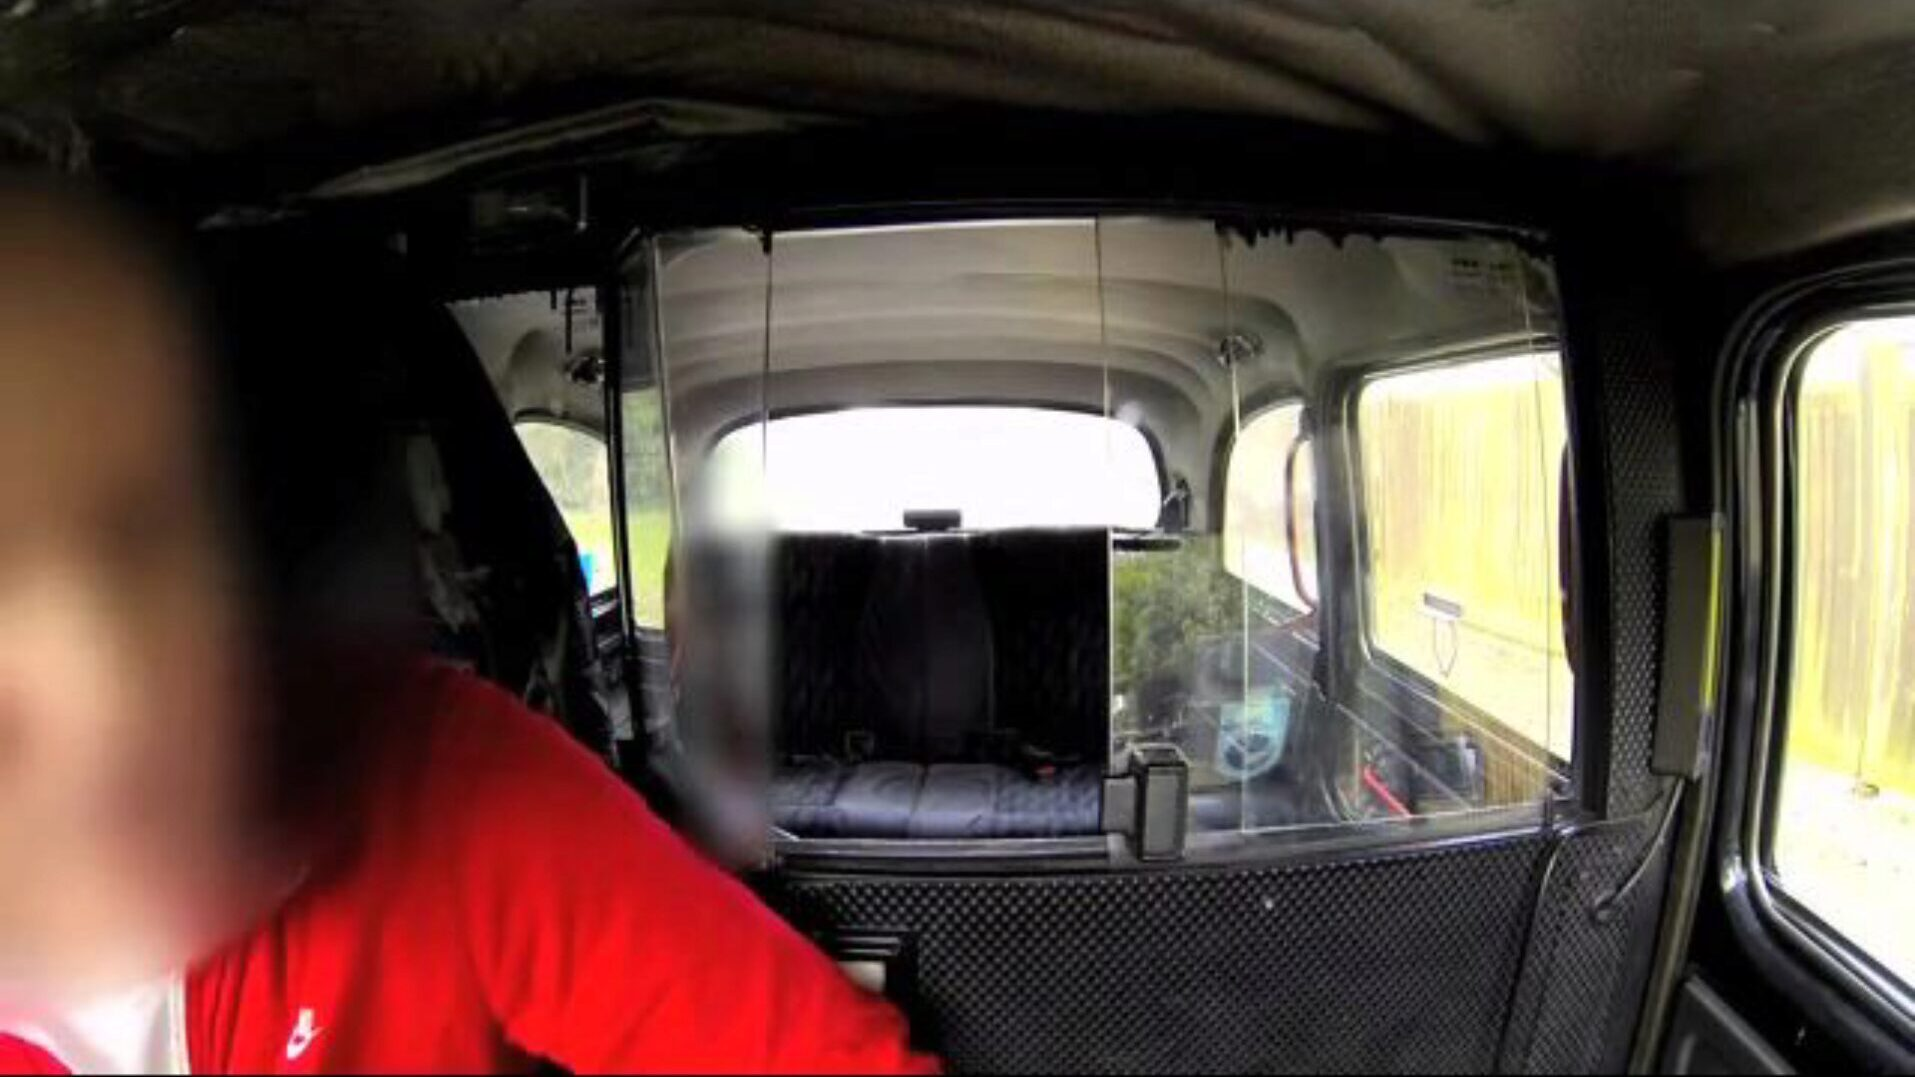 FakeTaxi - Look at the dirt you've made